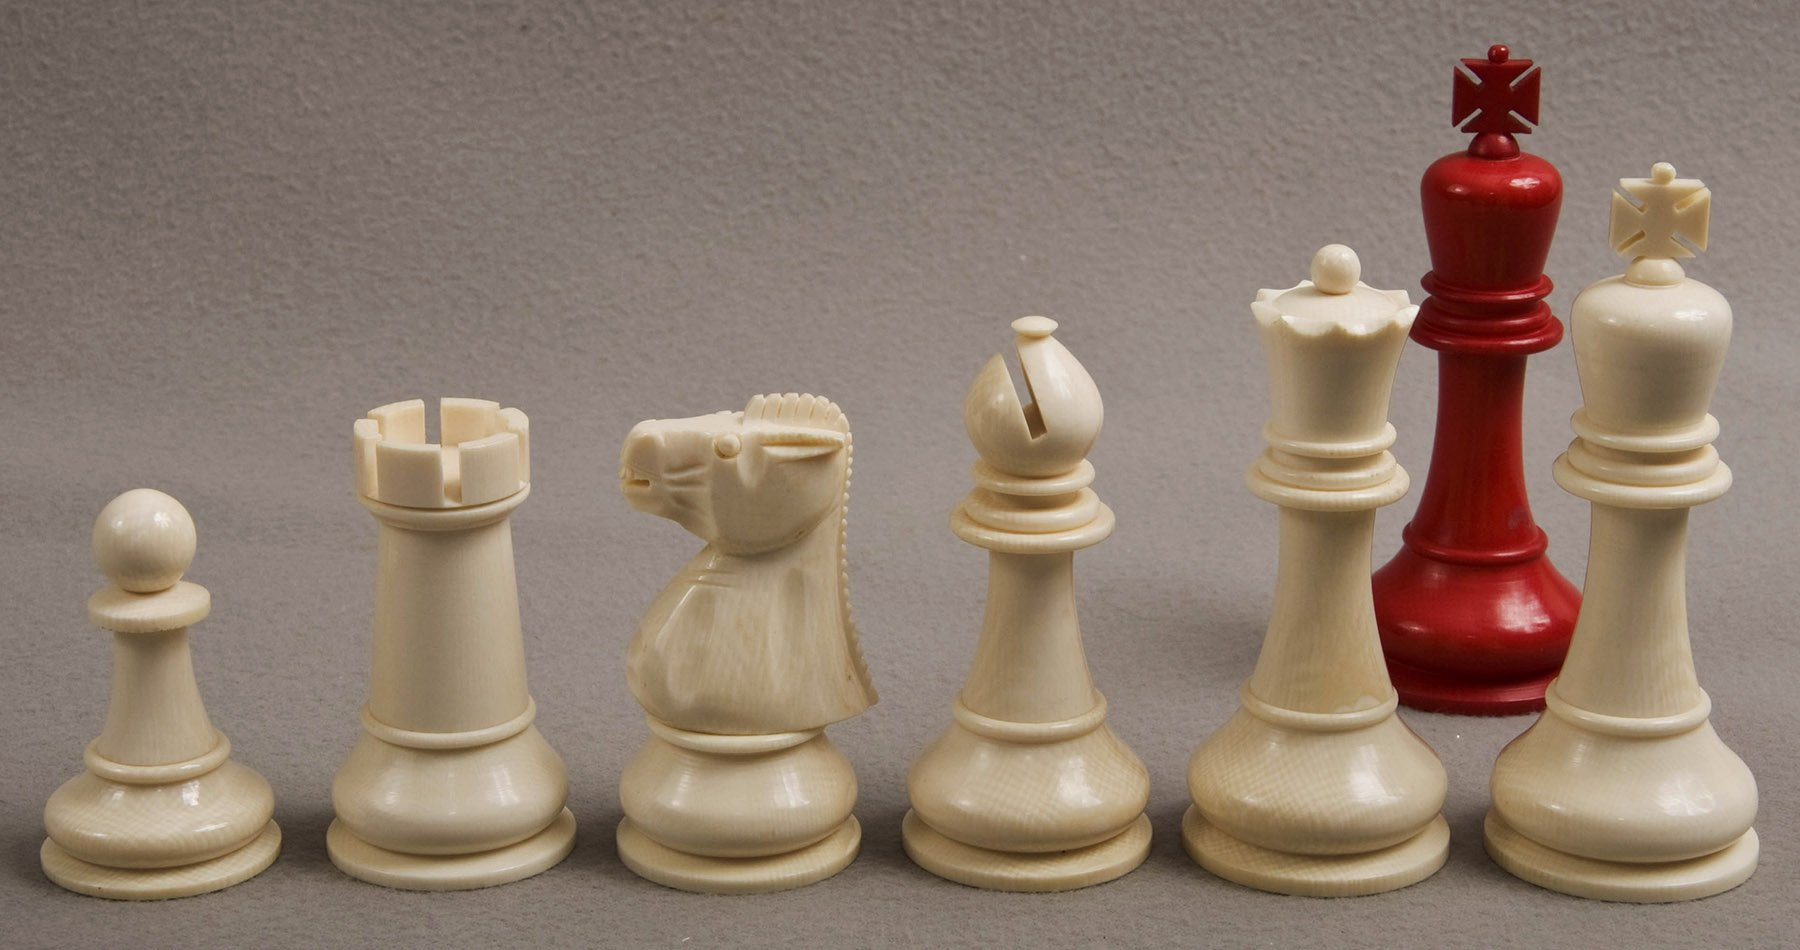 Antique baruch h wood staunton chess set - Collectible chess sets ...